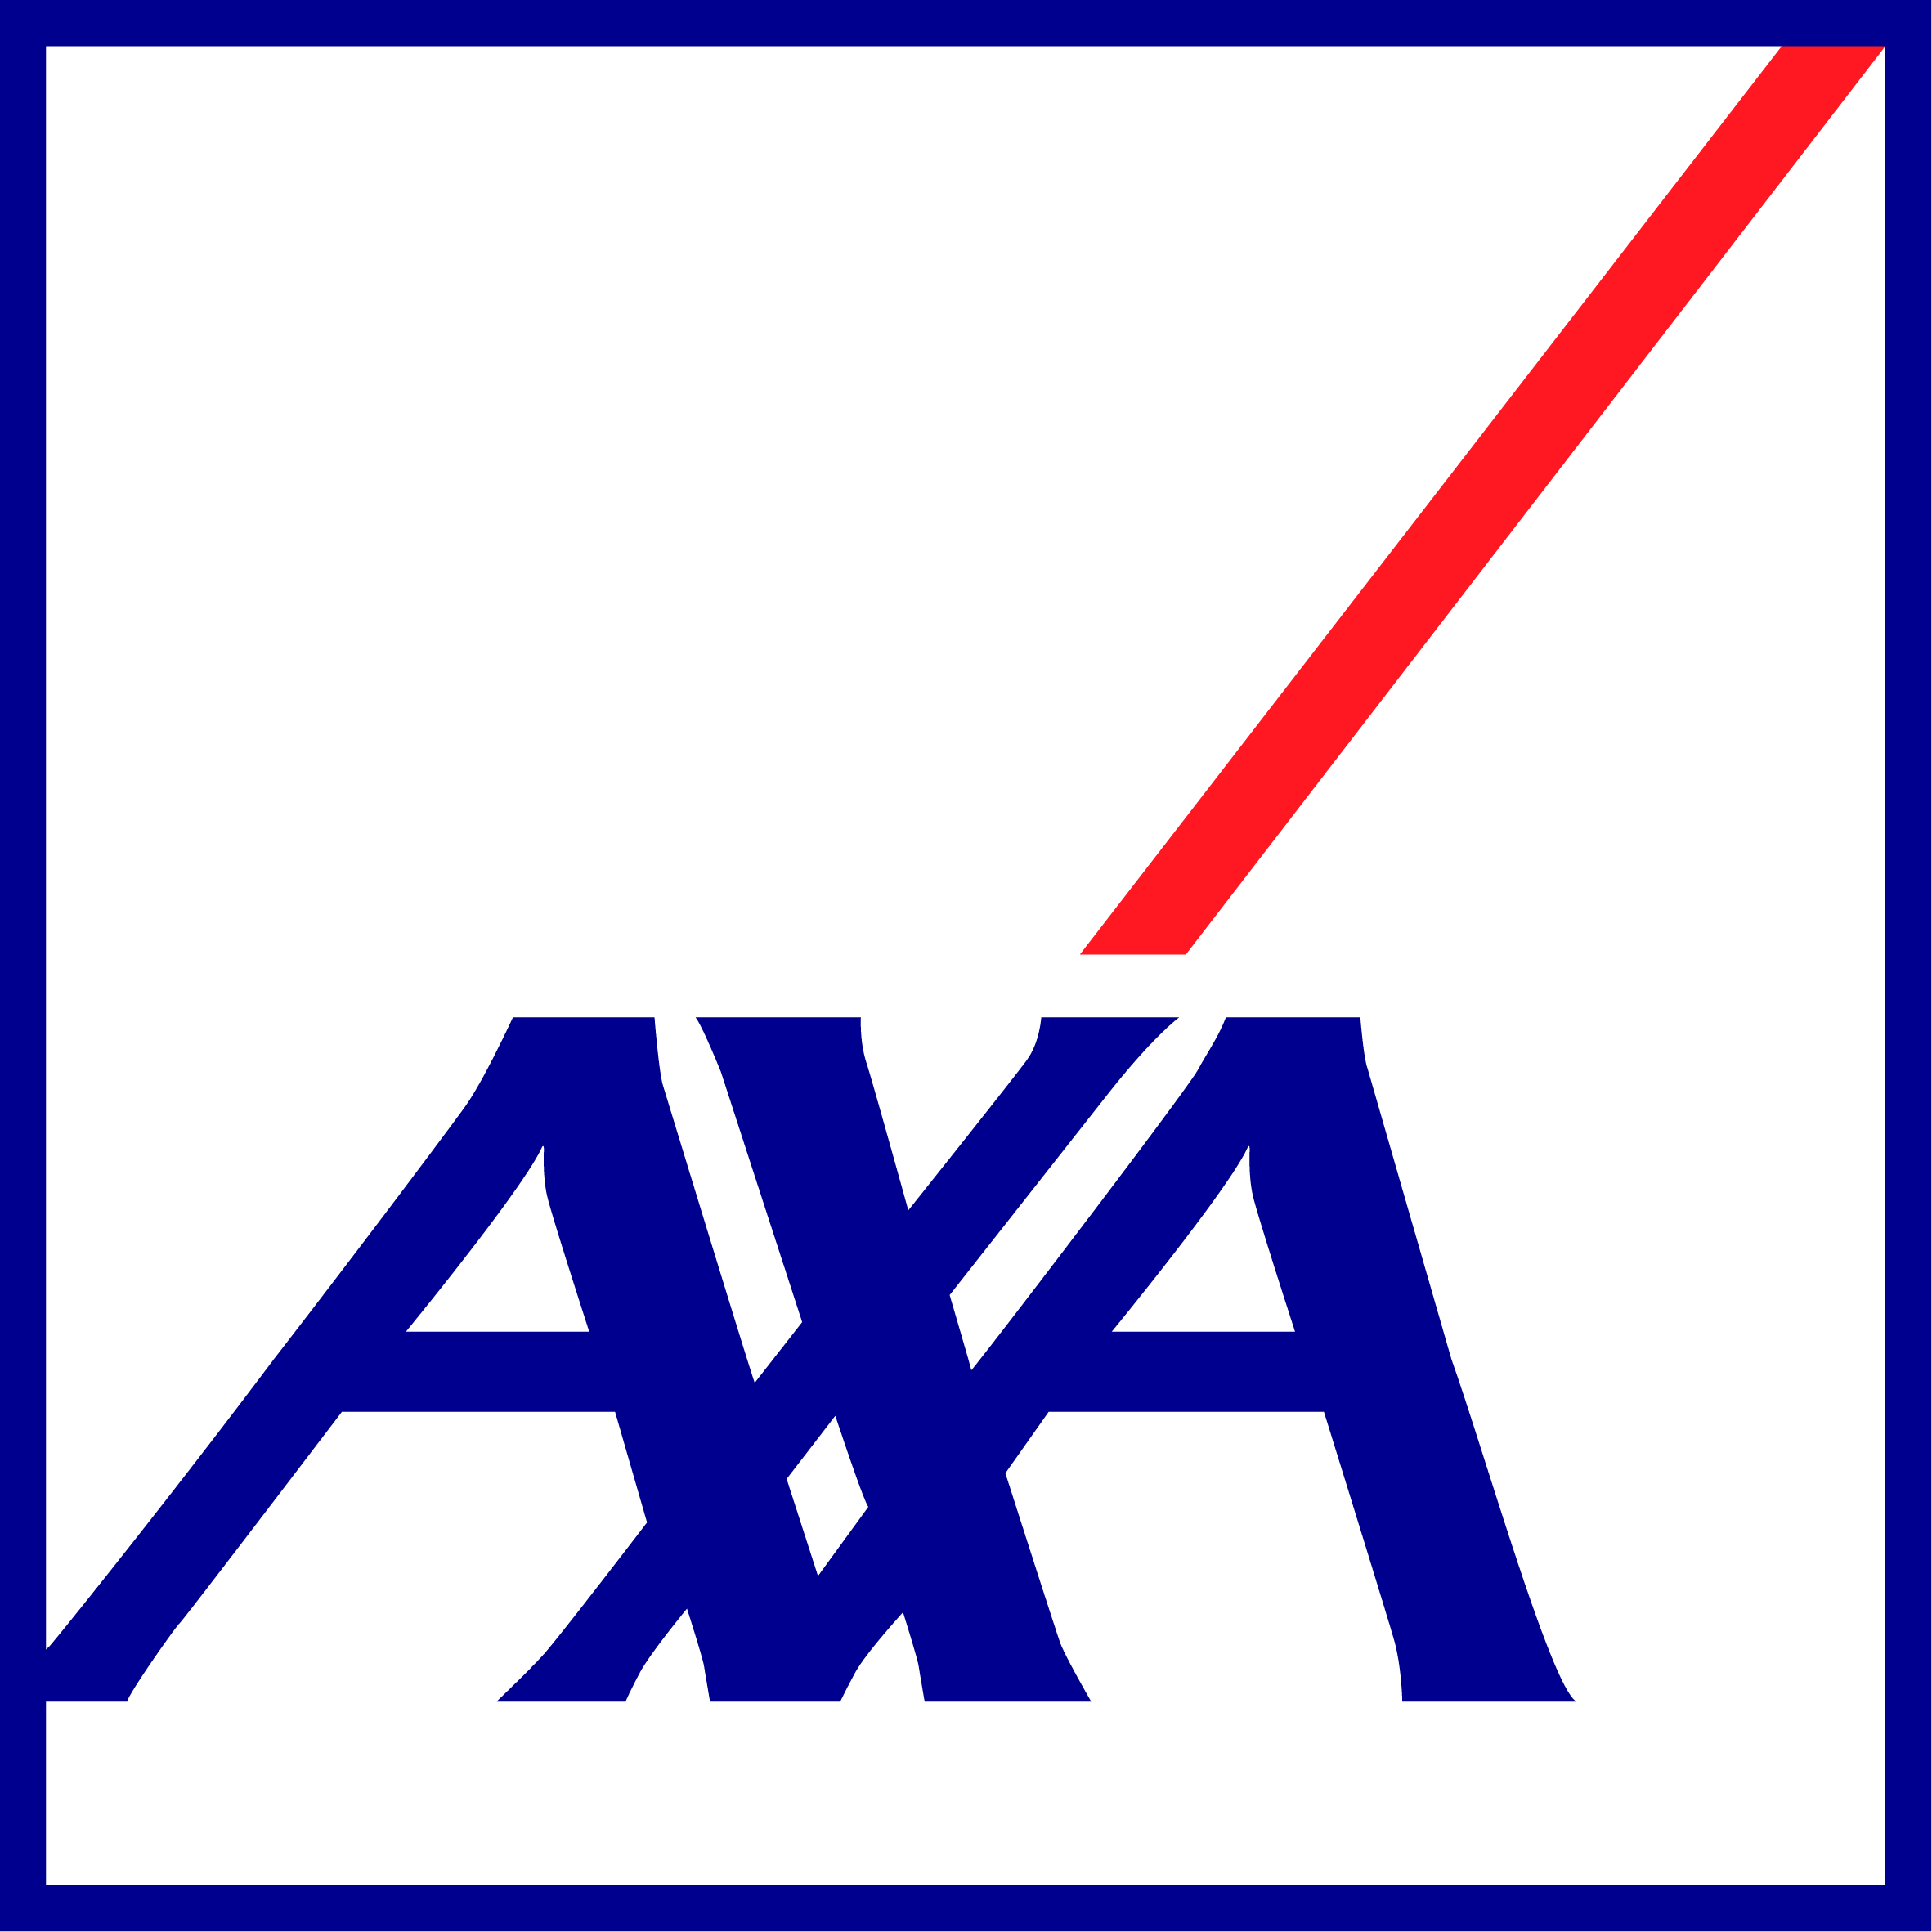 AXA-Logo-PNG-Free-Background.png